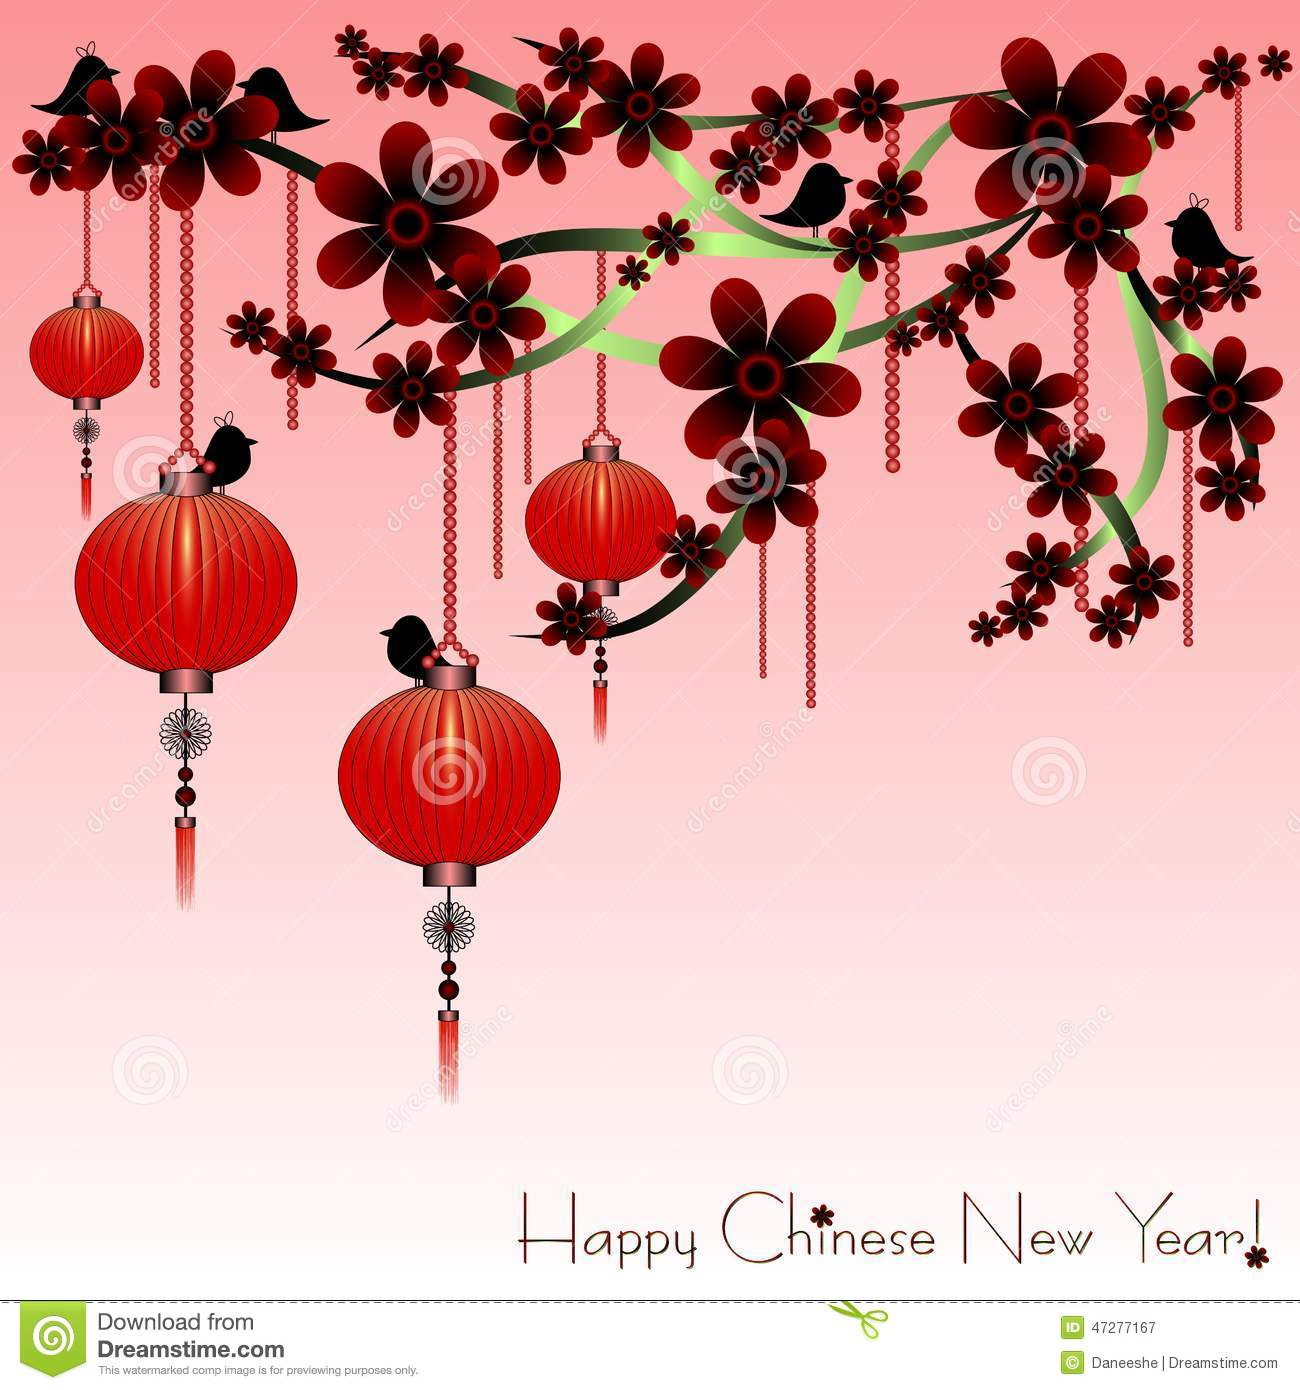 holiday postcard to the chinese new year 2015 - Chinese New Year Holiday